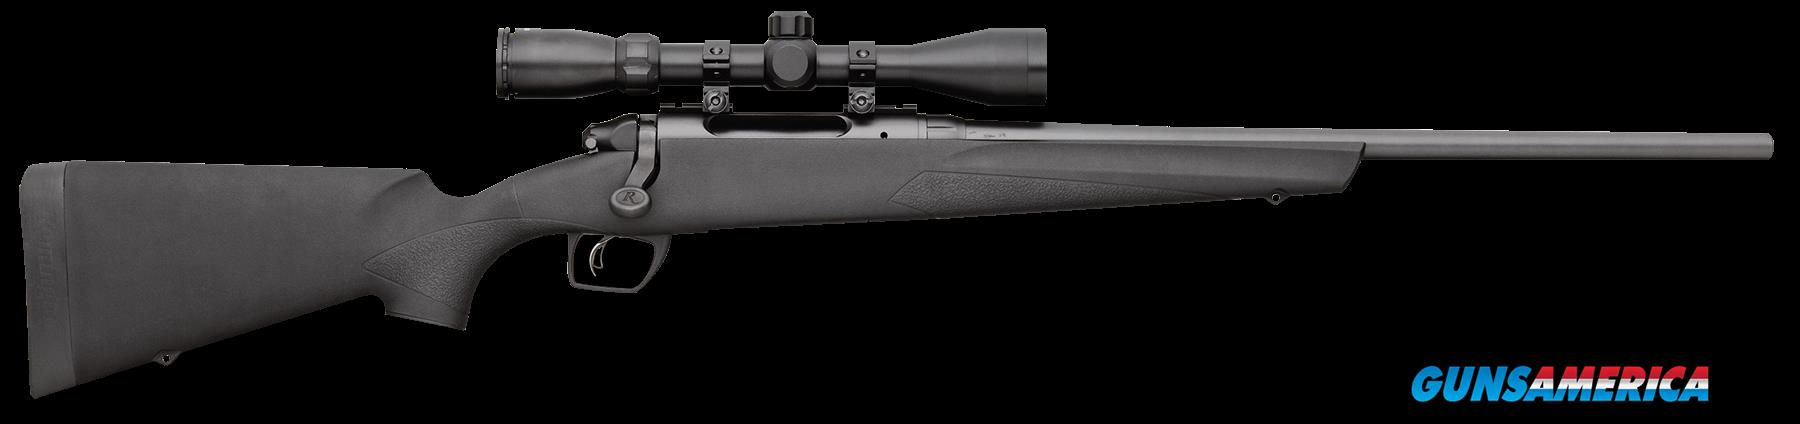 "Remington Firearms 85849 783 with Scope Bolt 300 Winchester Magnum 24"" 3+1 Synthetic Black Stk Black  Guns > Rifles > R Misc Rifles"